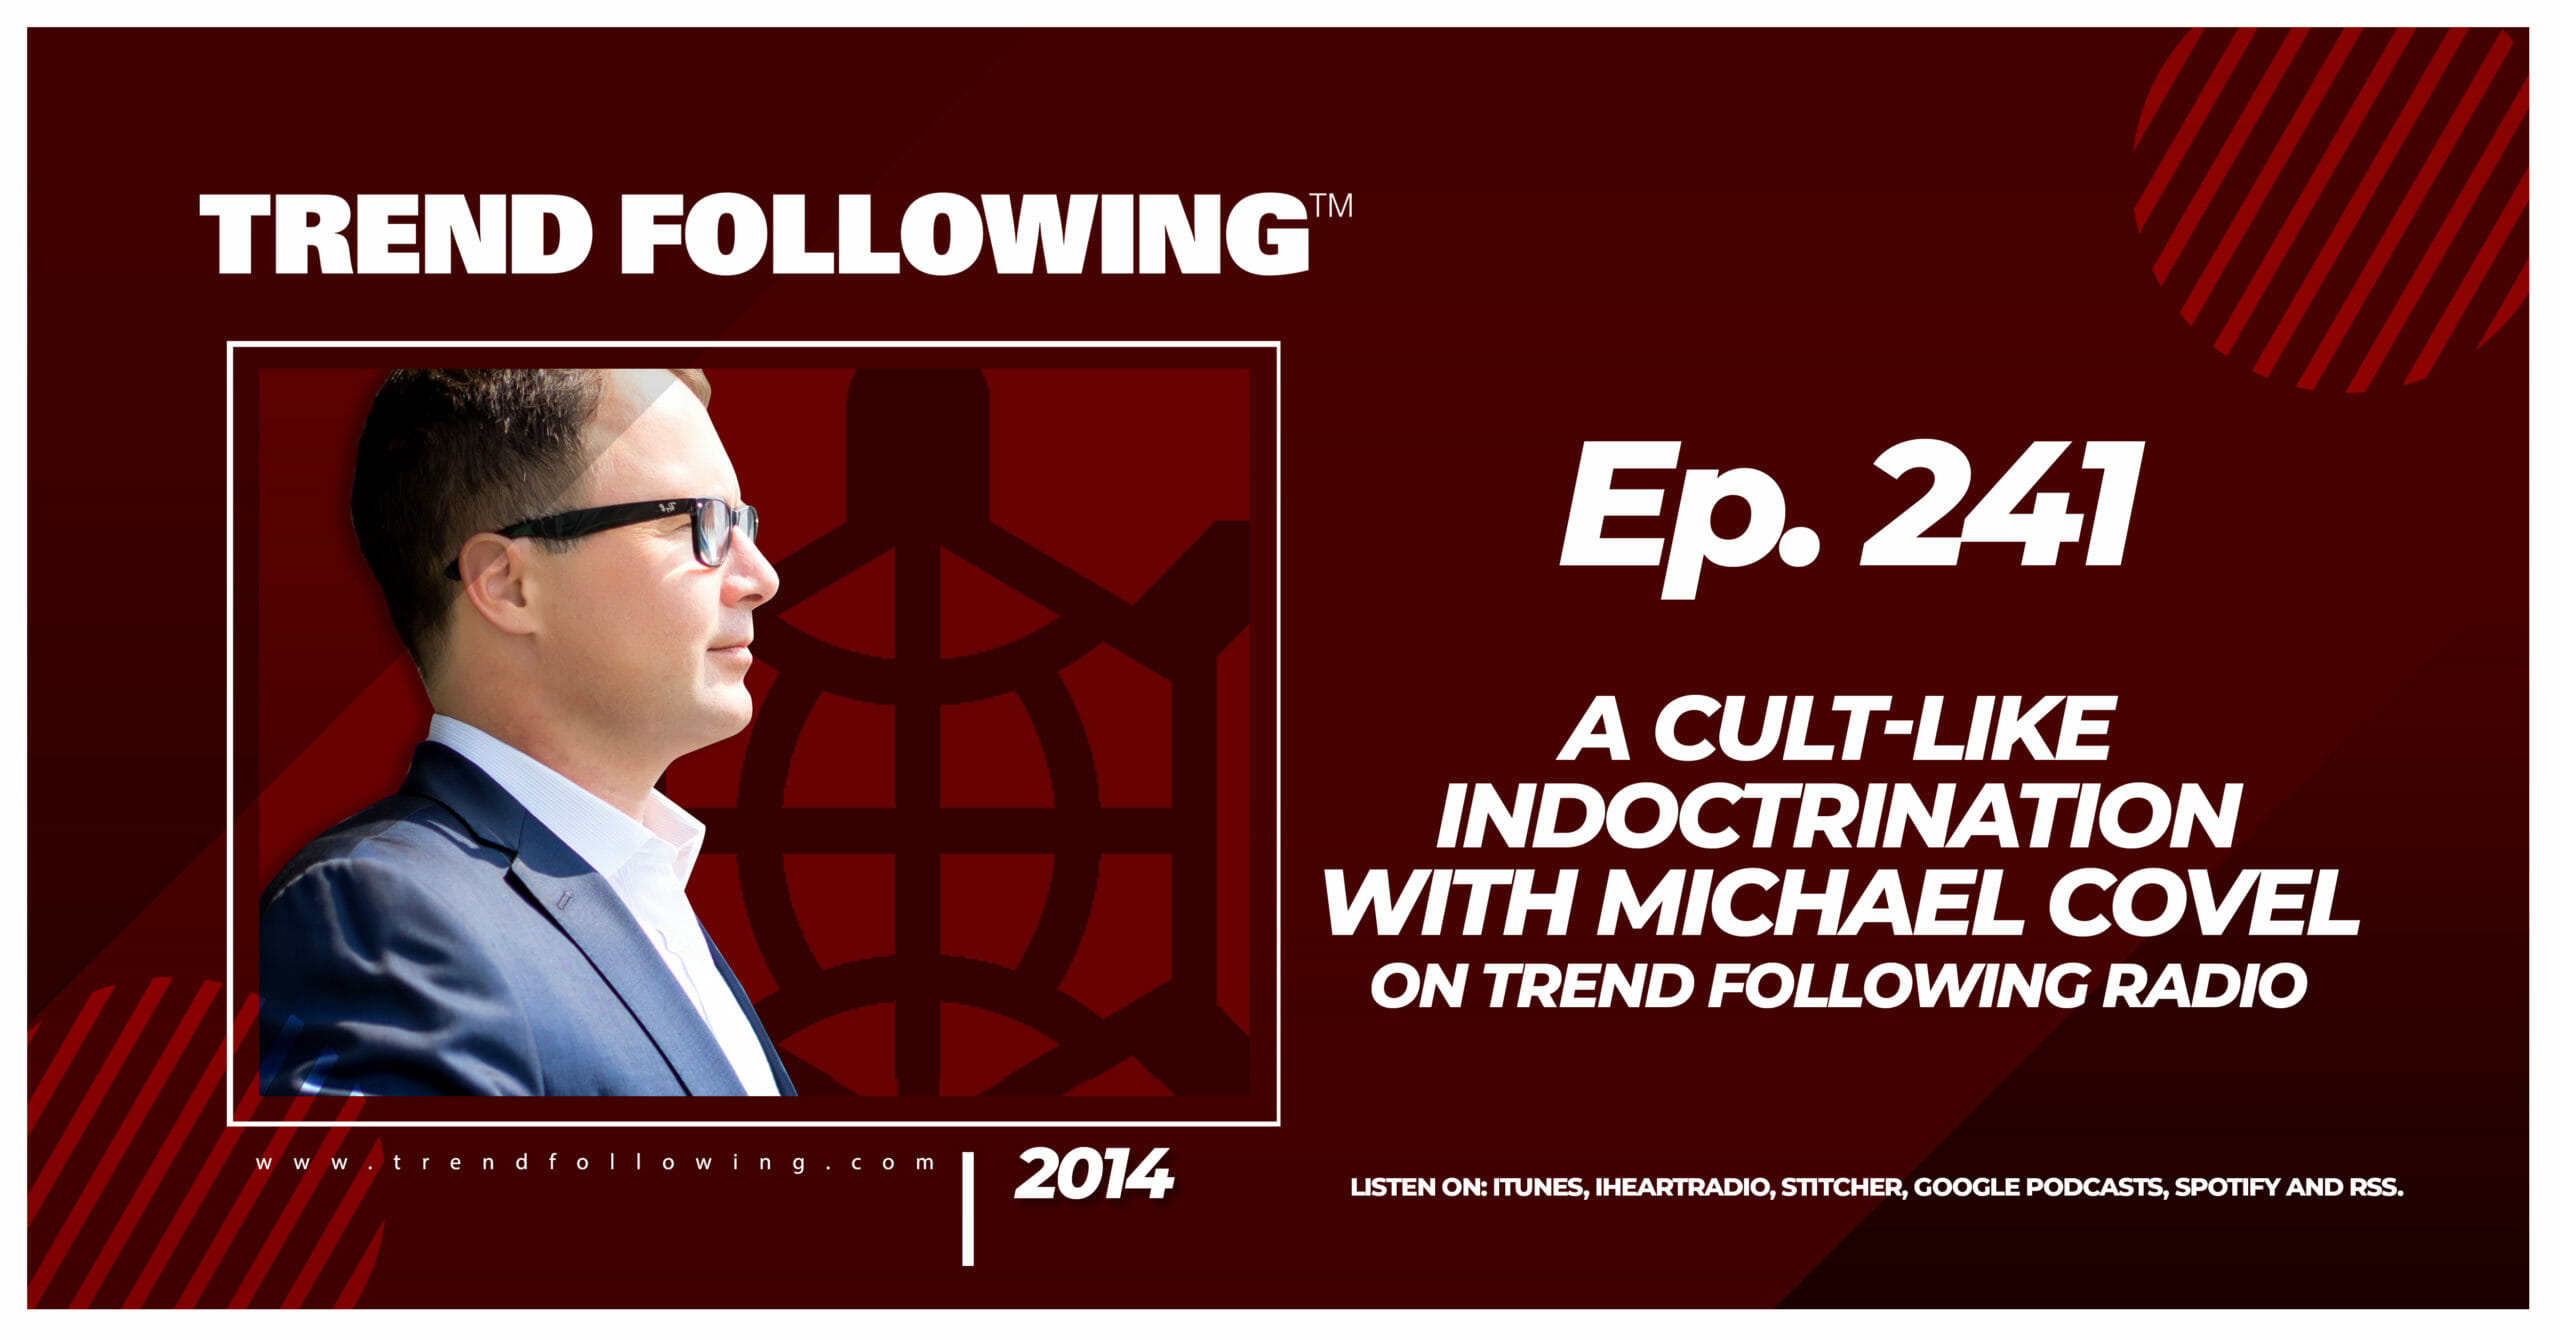 A Cult-Like Indoctrination with Michael Covel on Trend Following Radio